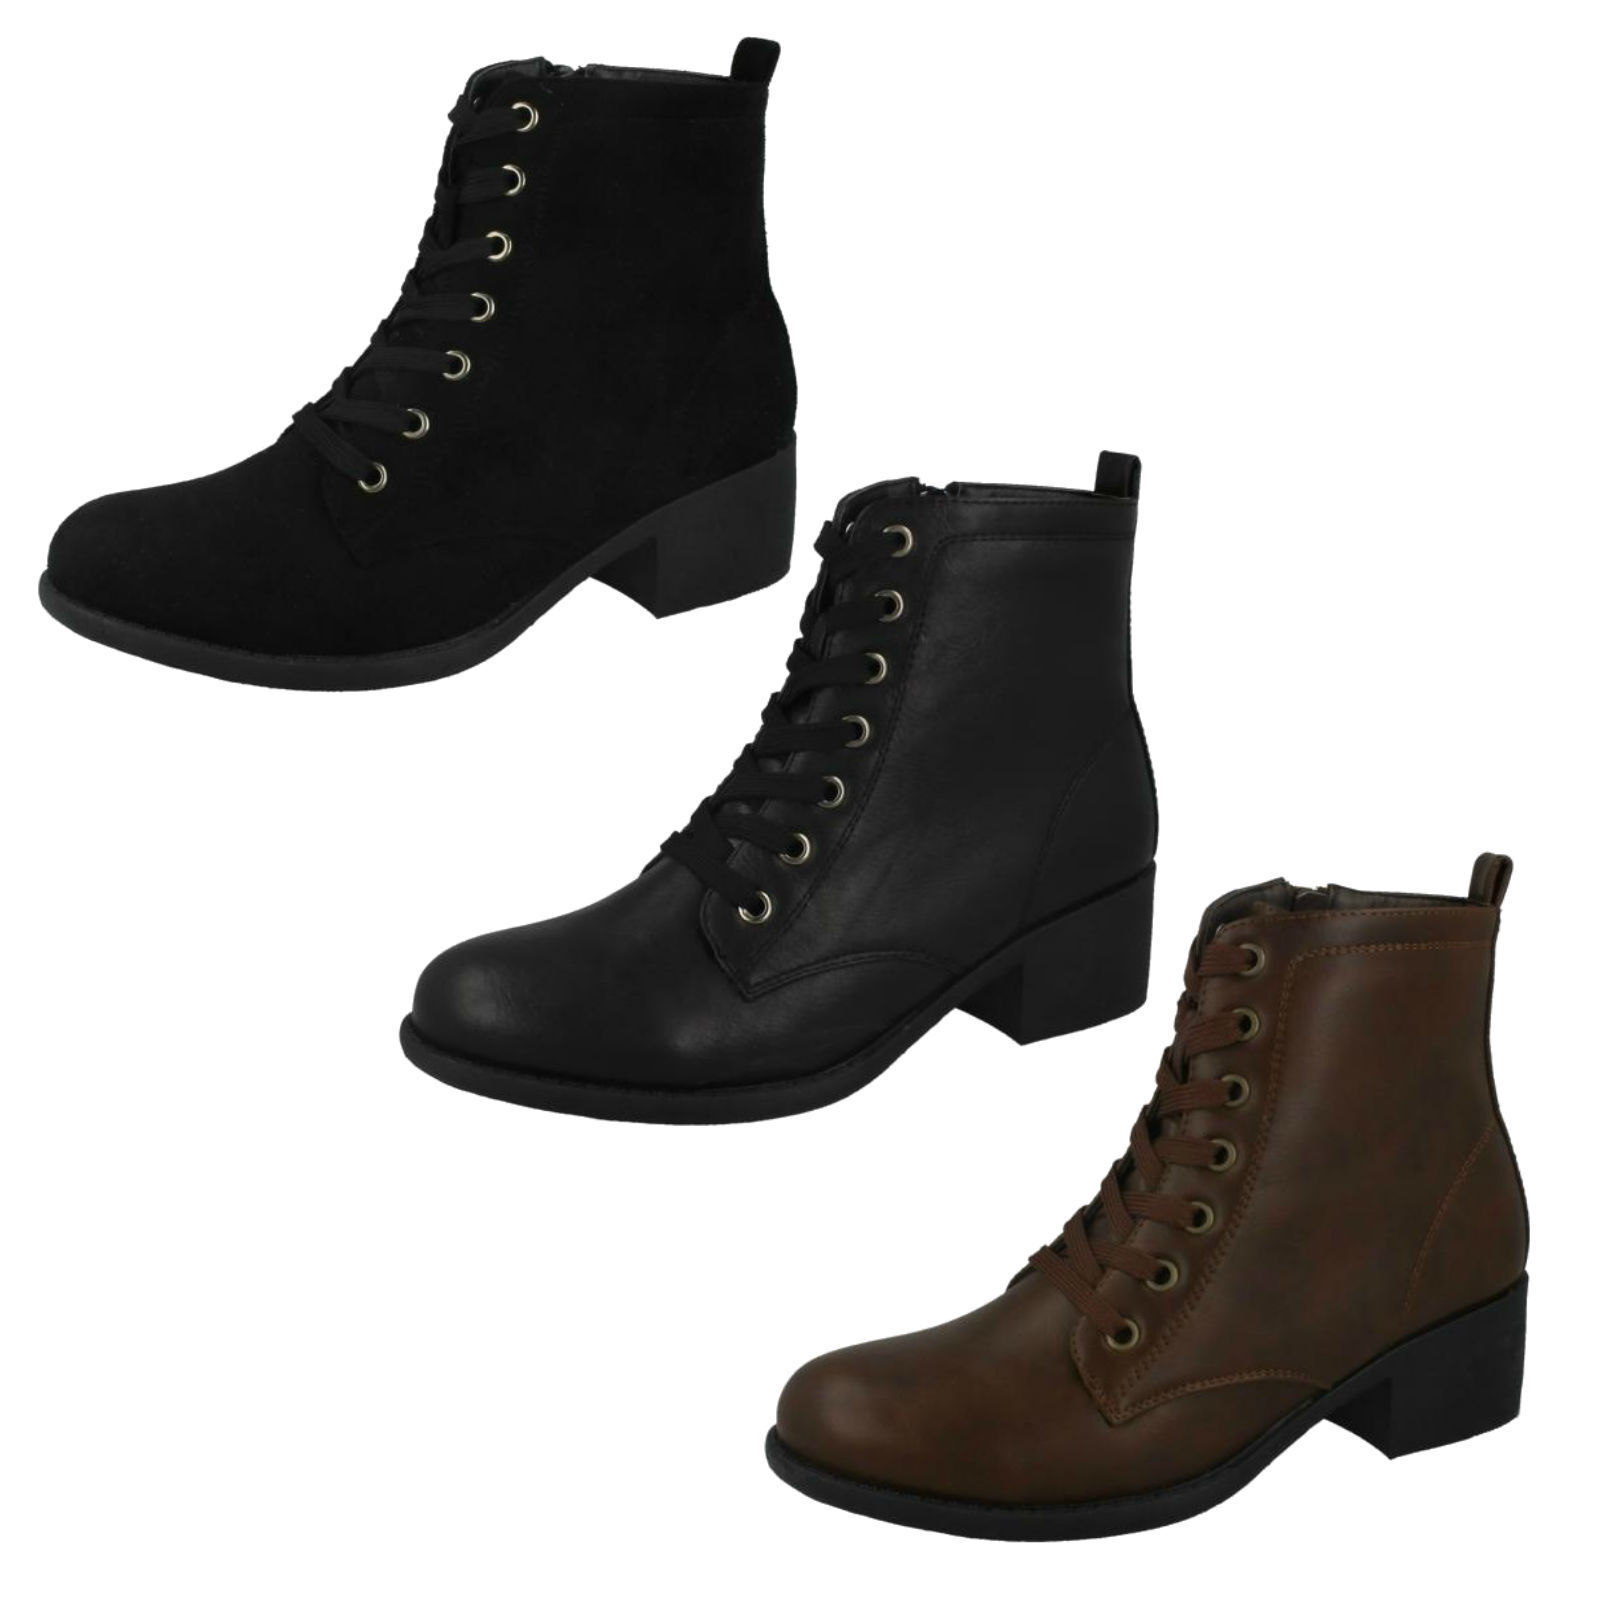 LADIES SPOT ON MID HEEL ZIP LACE UP CASUAL WINTER ANKLE BOOTS SIZE F50863